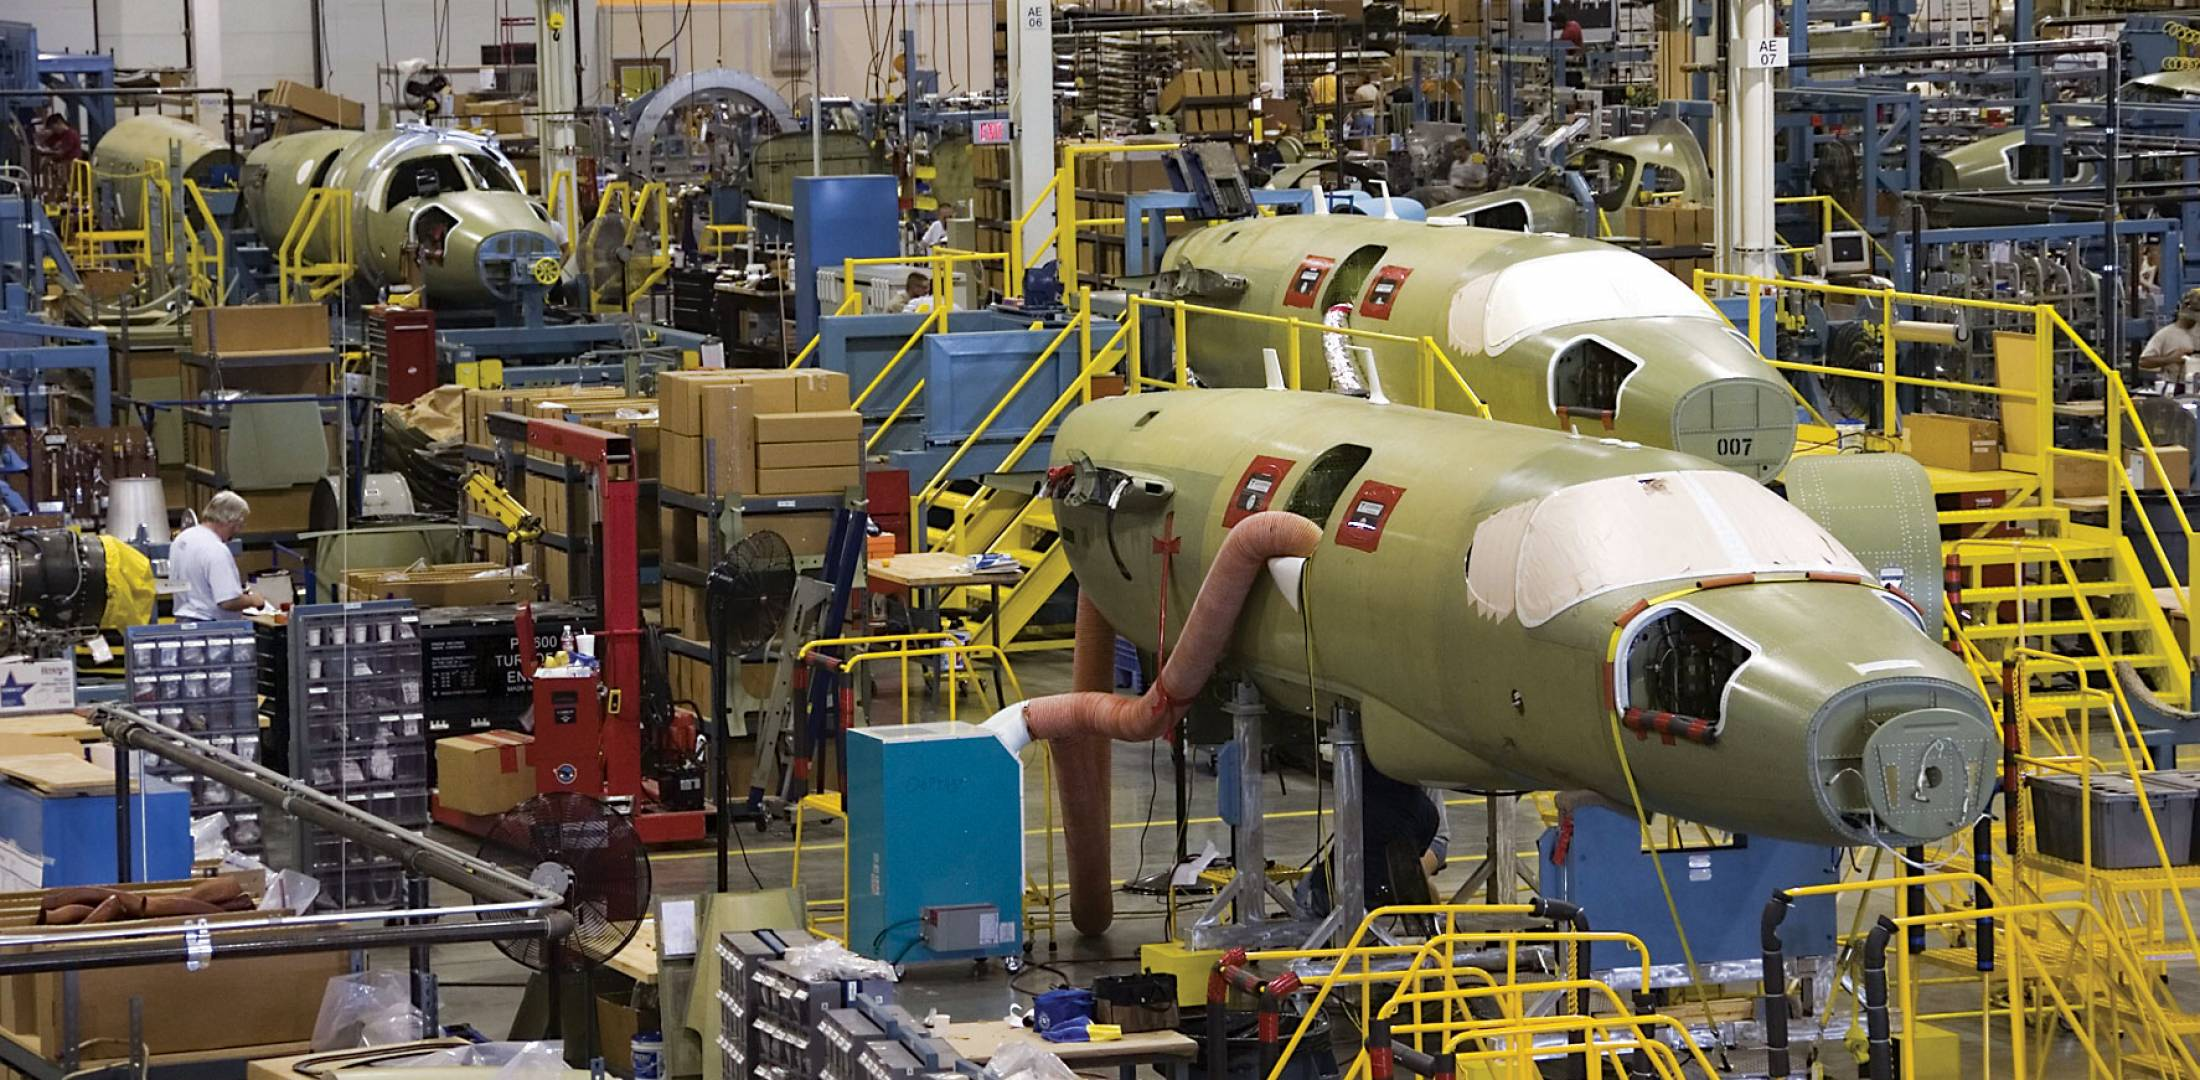 Mustang production line